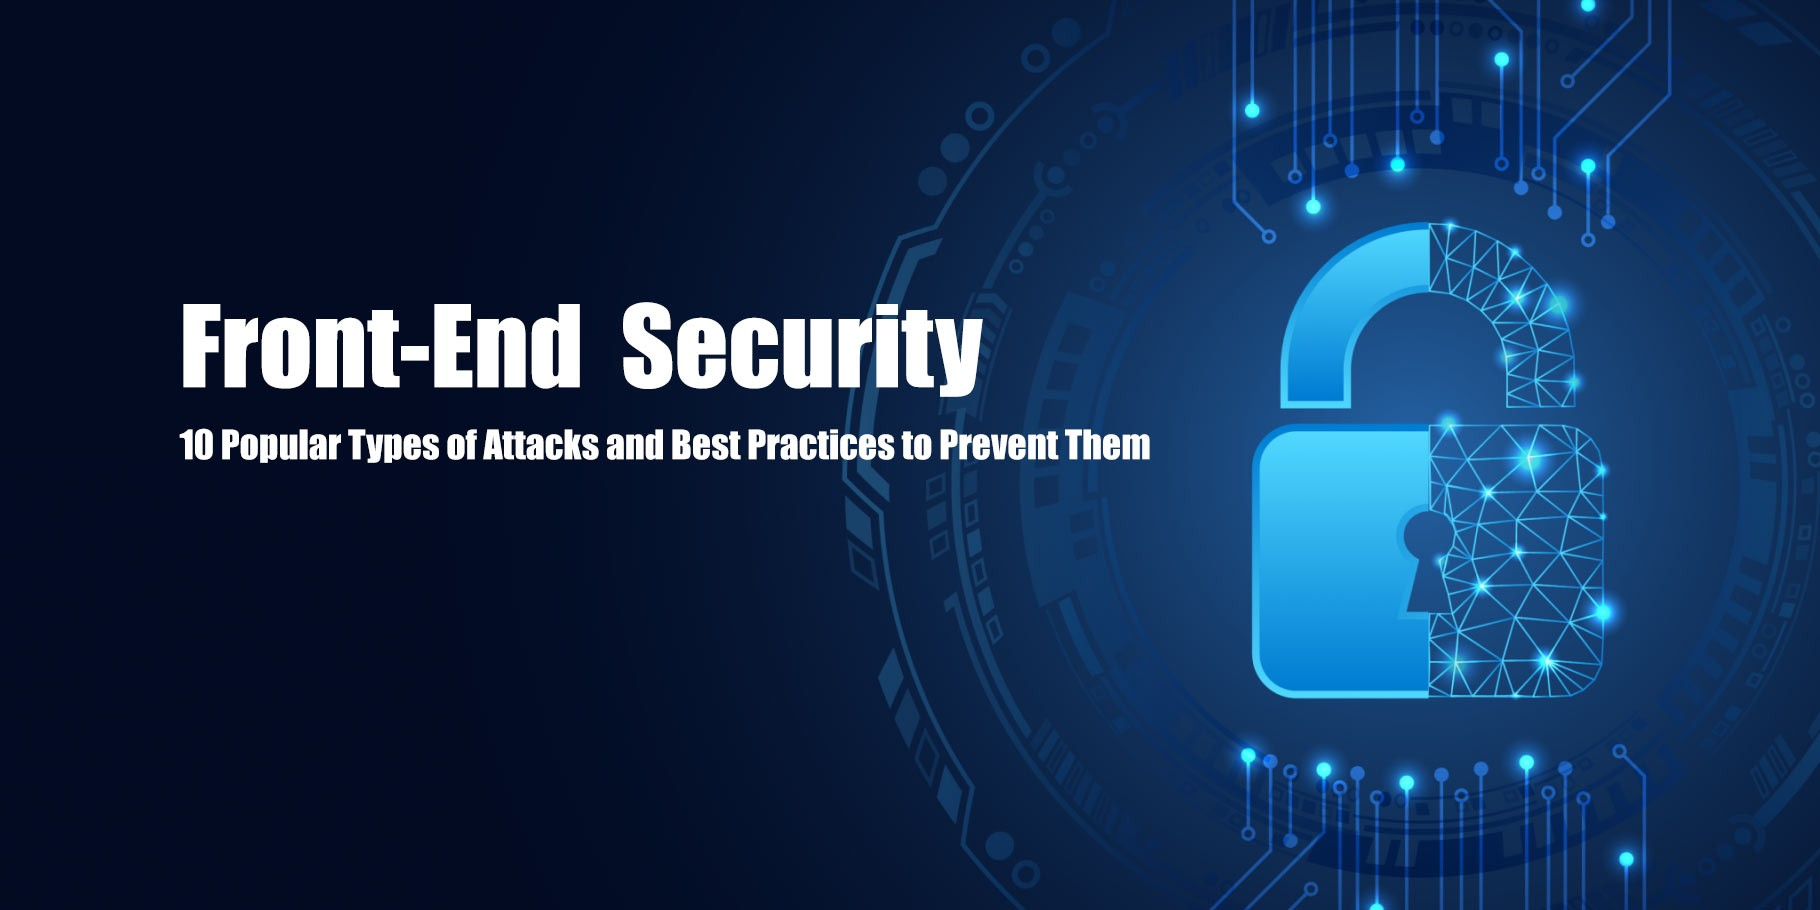 Front-End Security: 10 Popular Types of Attacks and Best Practices to Prevent Them.